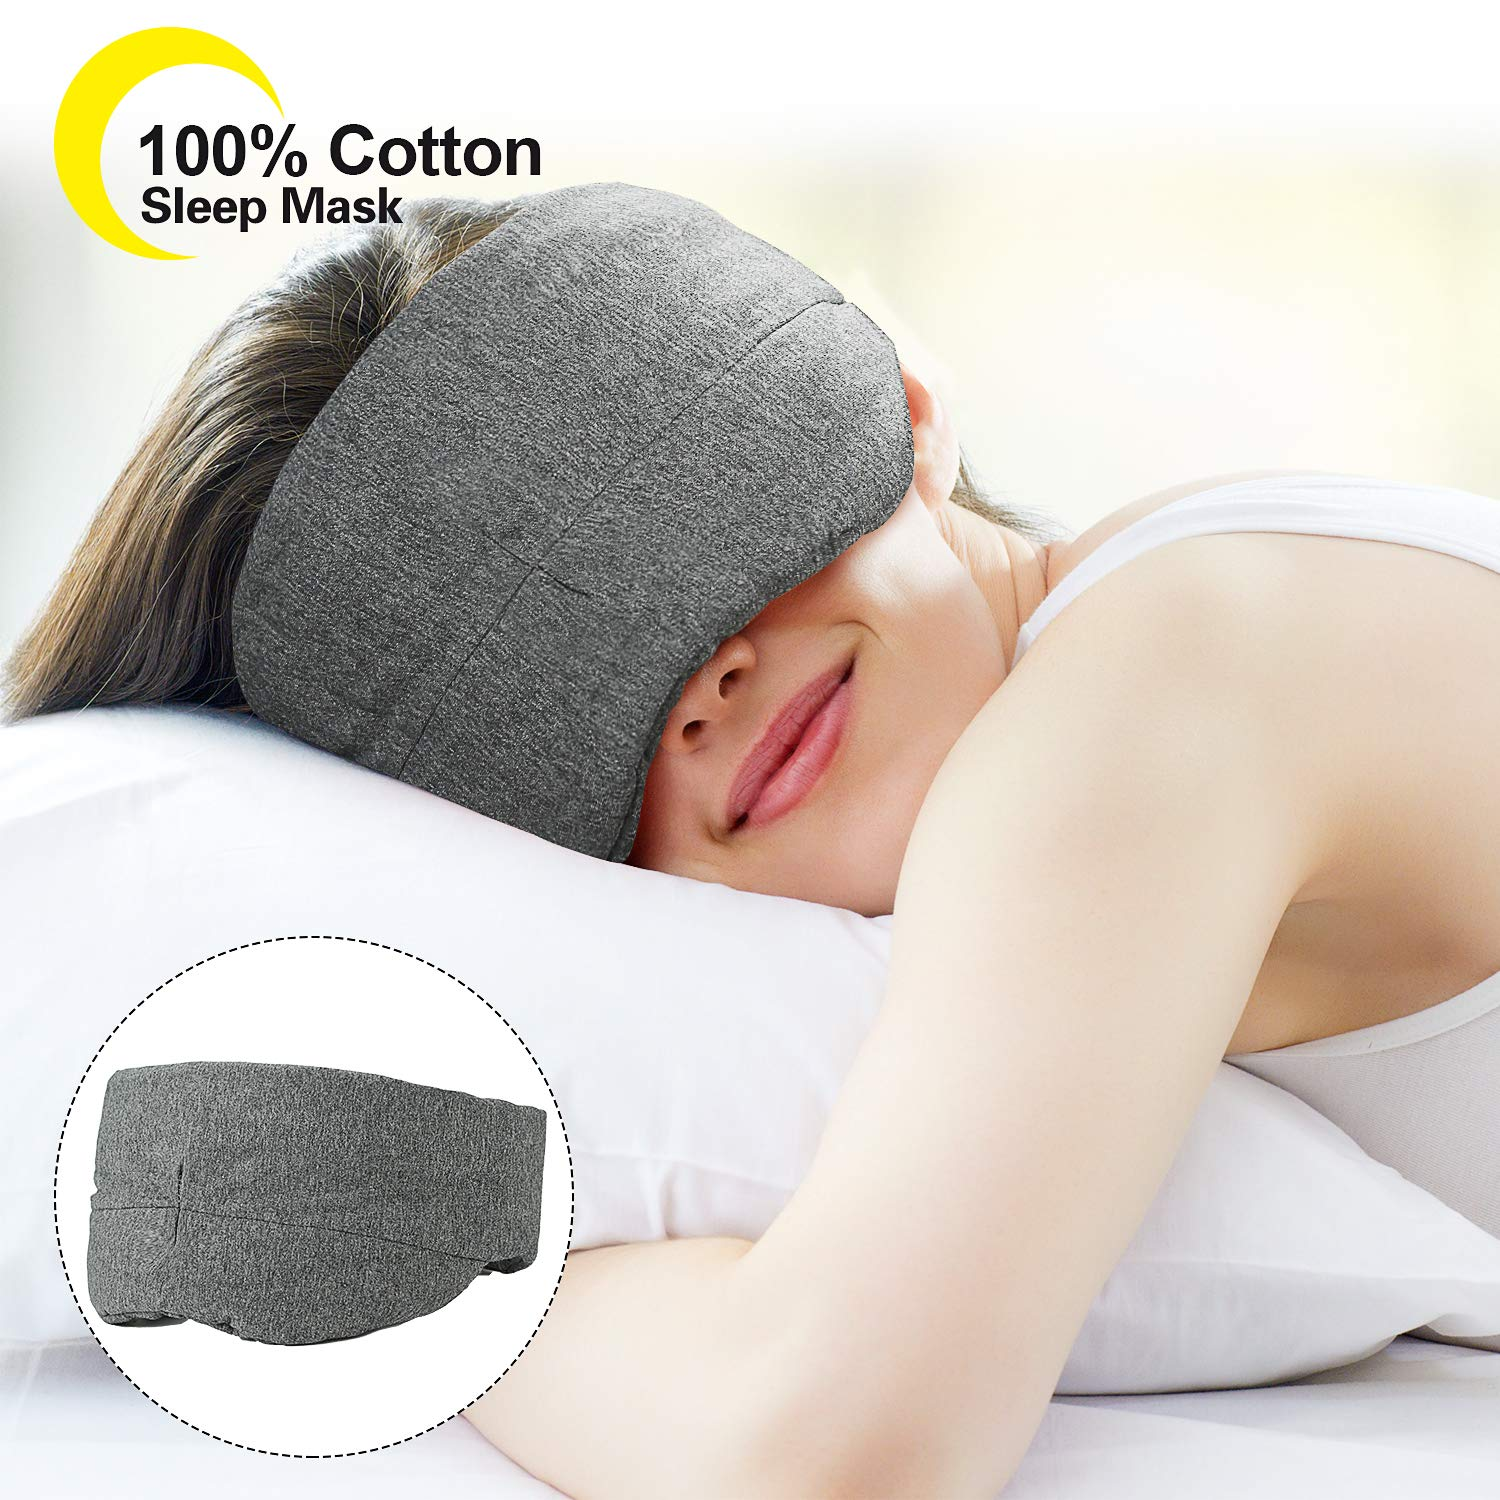 100% Blackout Cotton Sleep Mask - New Design Super Light Blocking Sleeping Eye Mask Natural Soft Comfortable Night Blindfold Adjustable Eyeshade with Carrying Case for Women Men Home Travel